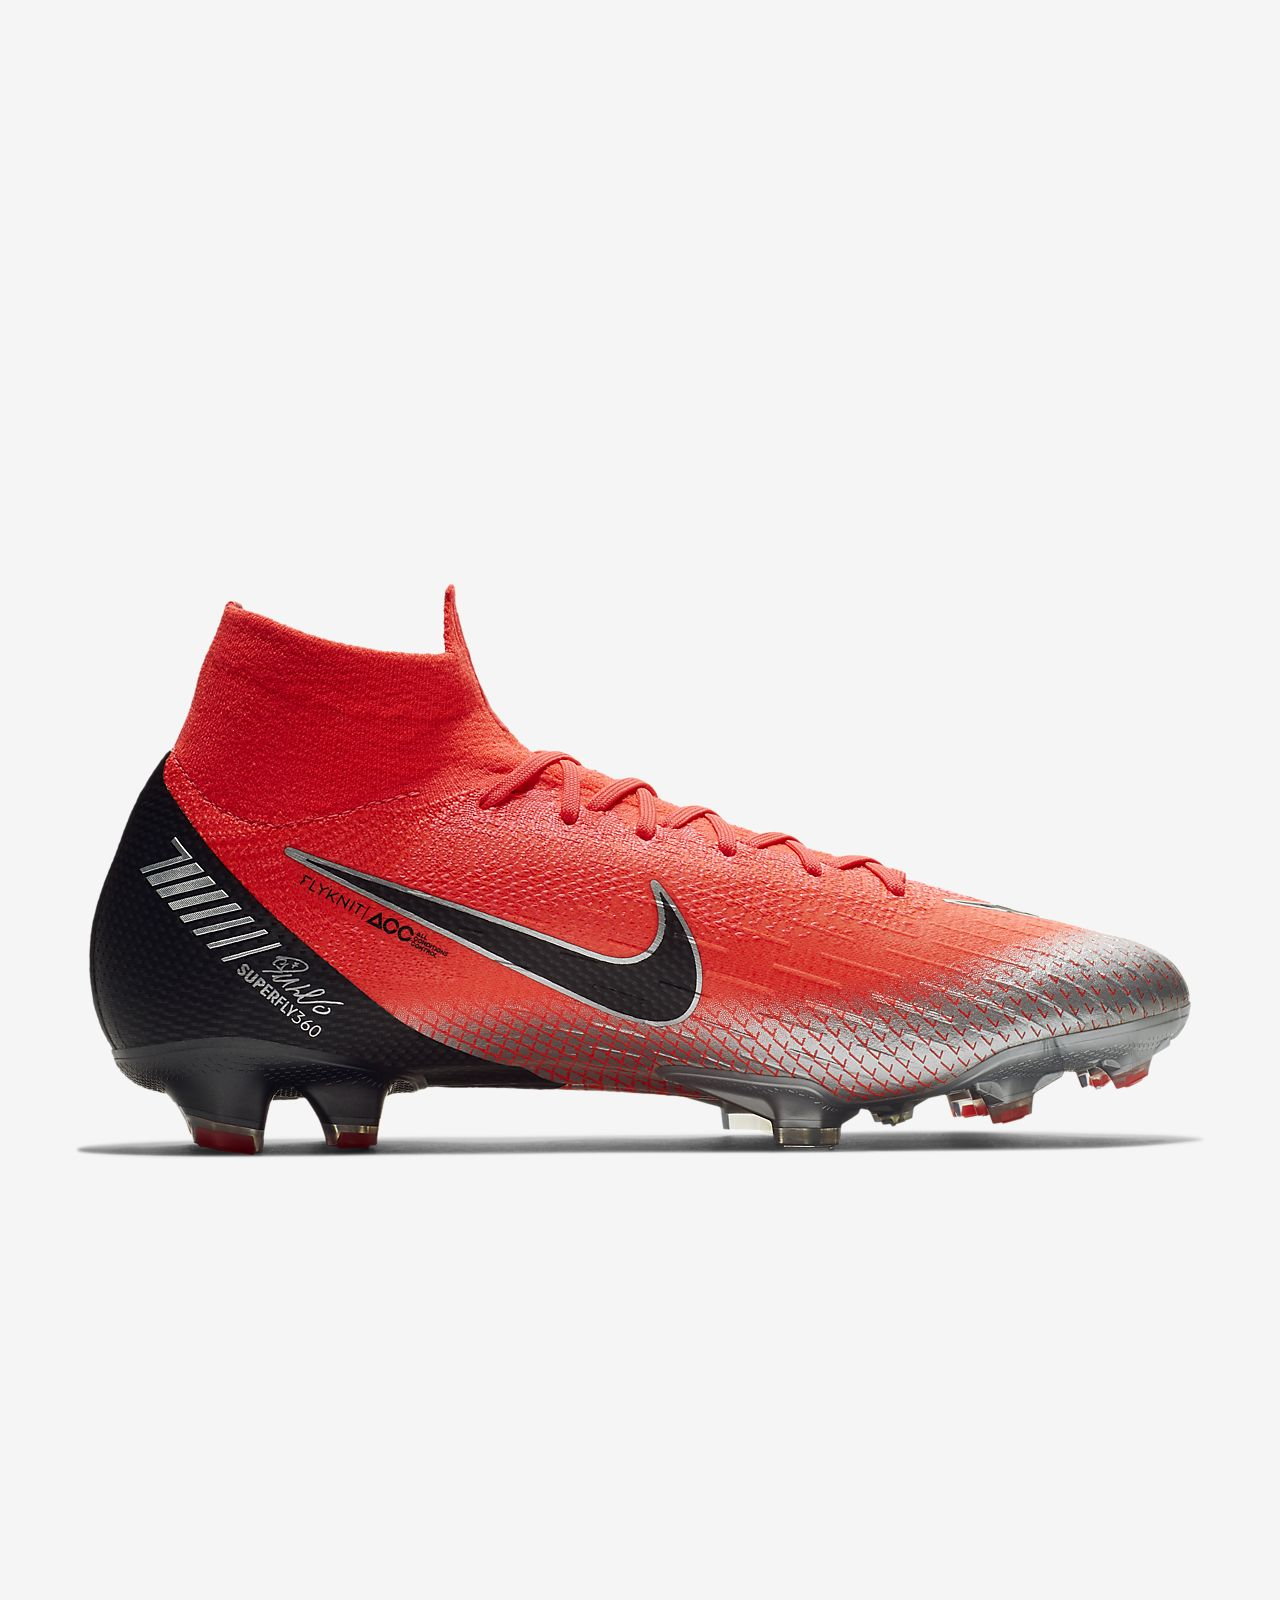 best website 54e24 21c74 ... Nike Mercurial Superfly 360 Elite SE FG Botas de fútbol para terreno  firme